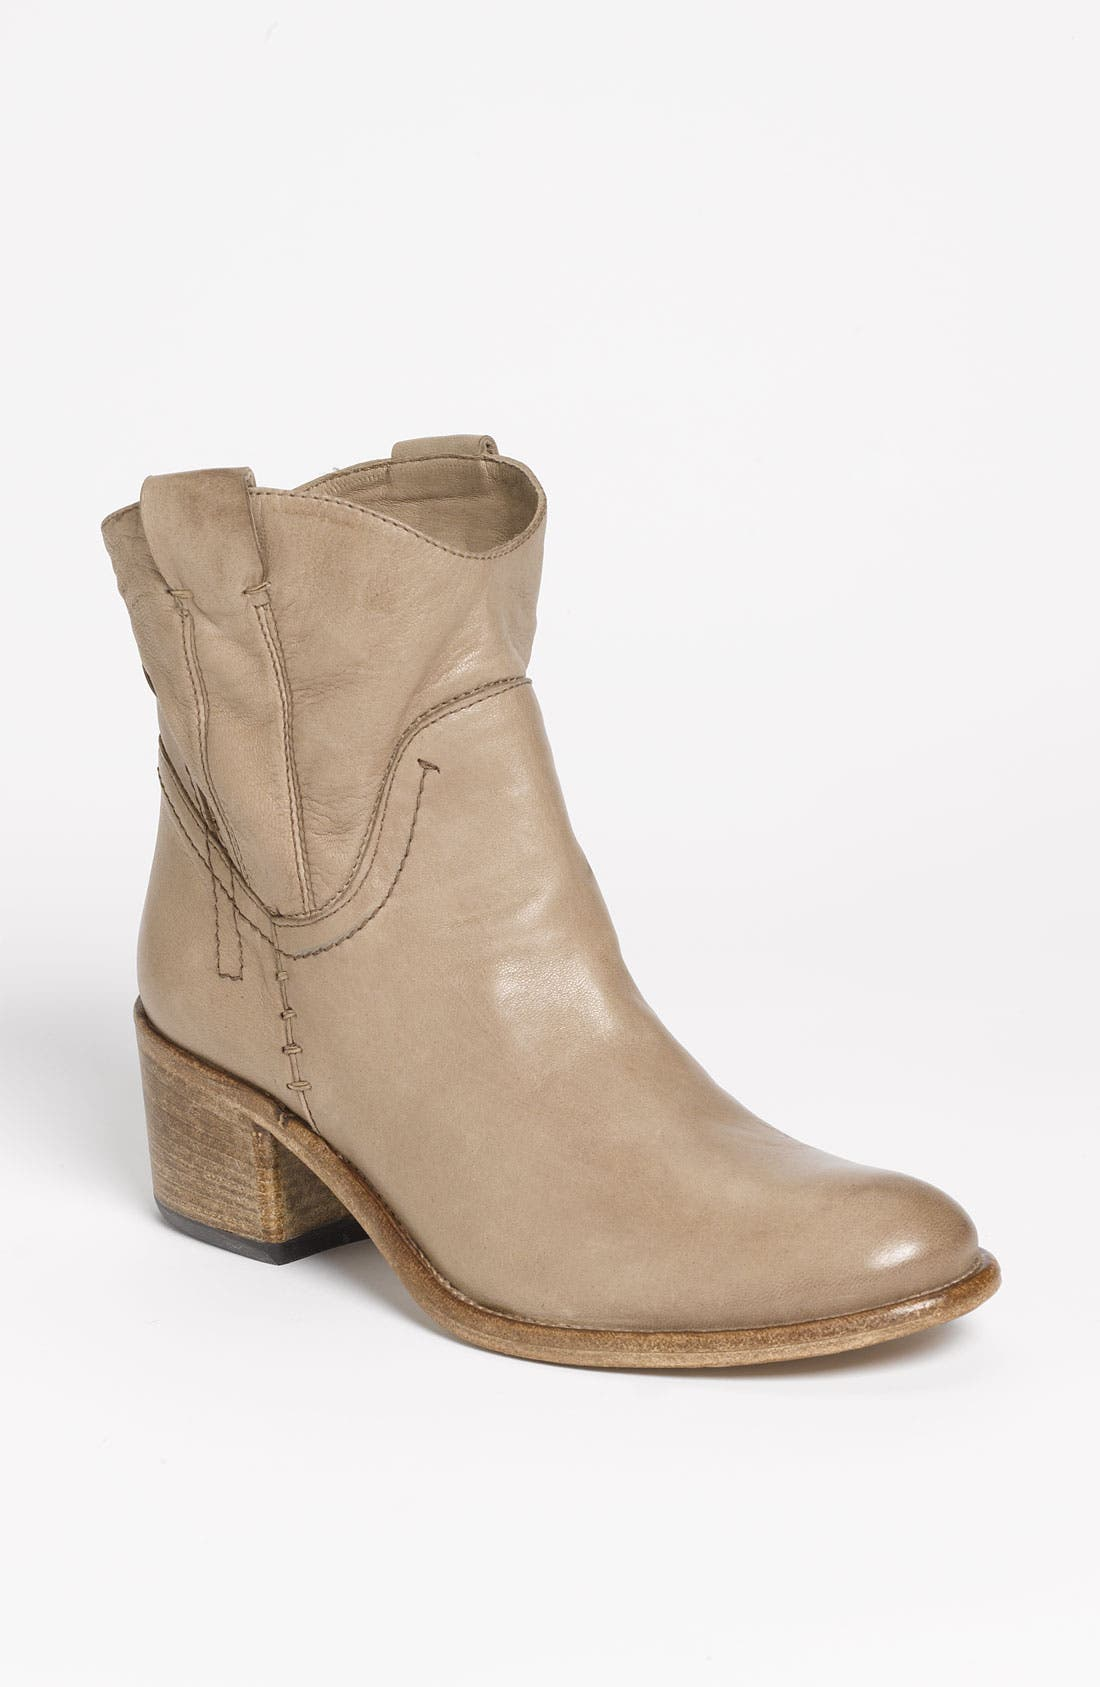 Alternate Image 1 Selected - Alberto Fermani Western Ankle Boot